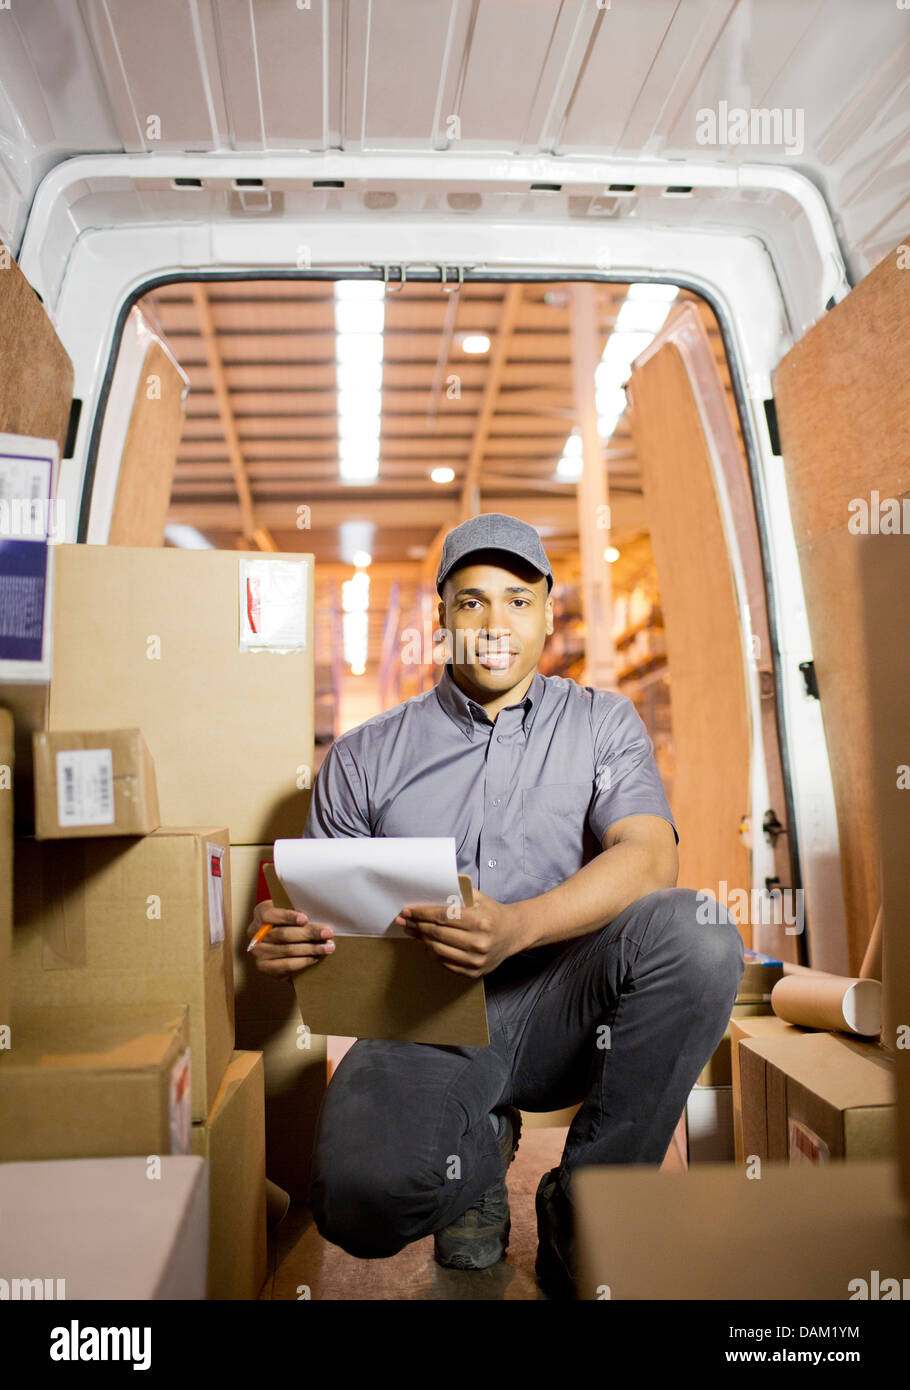 Delivery boy checking boxes in van - Stock Image